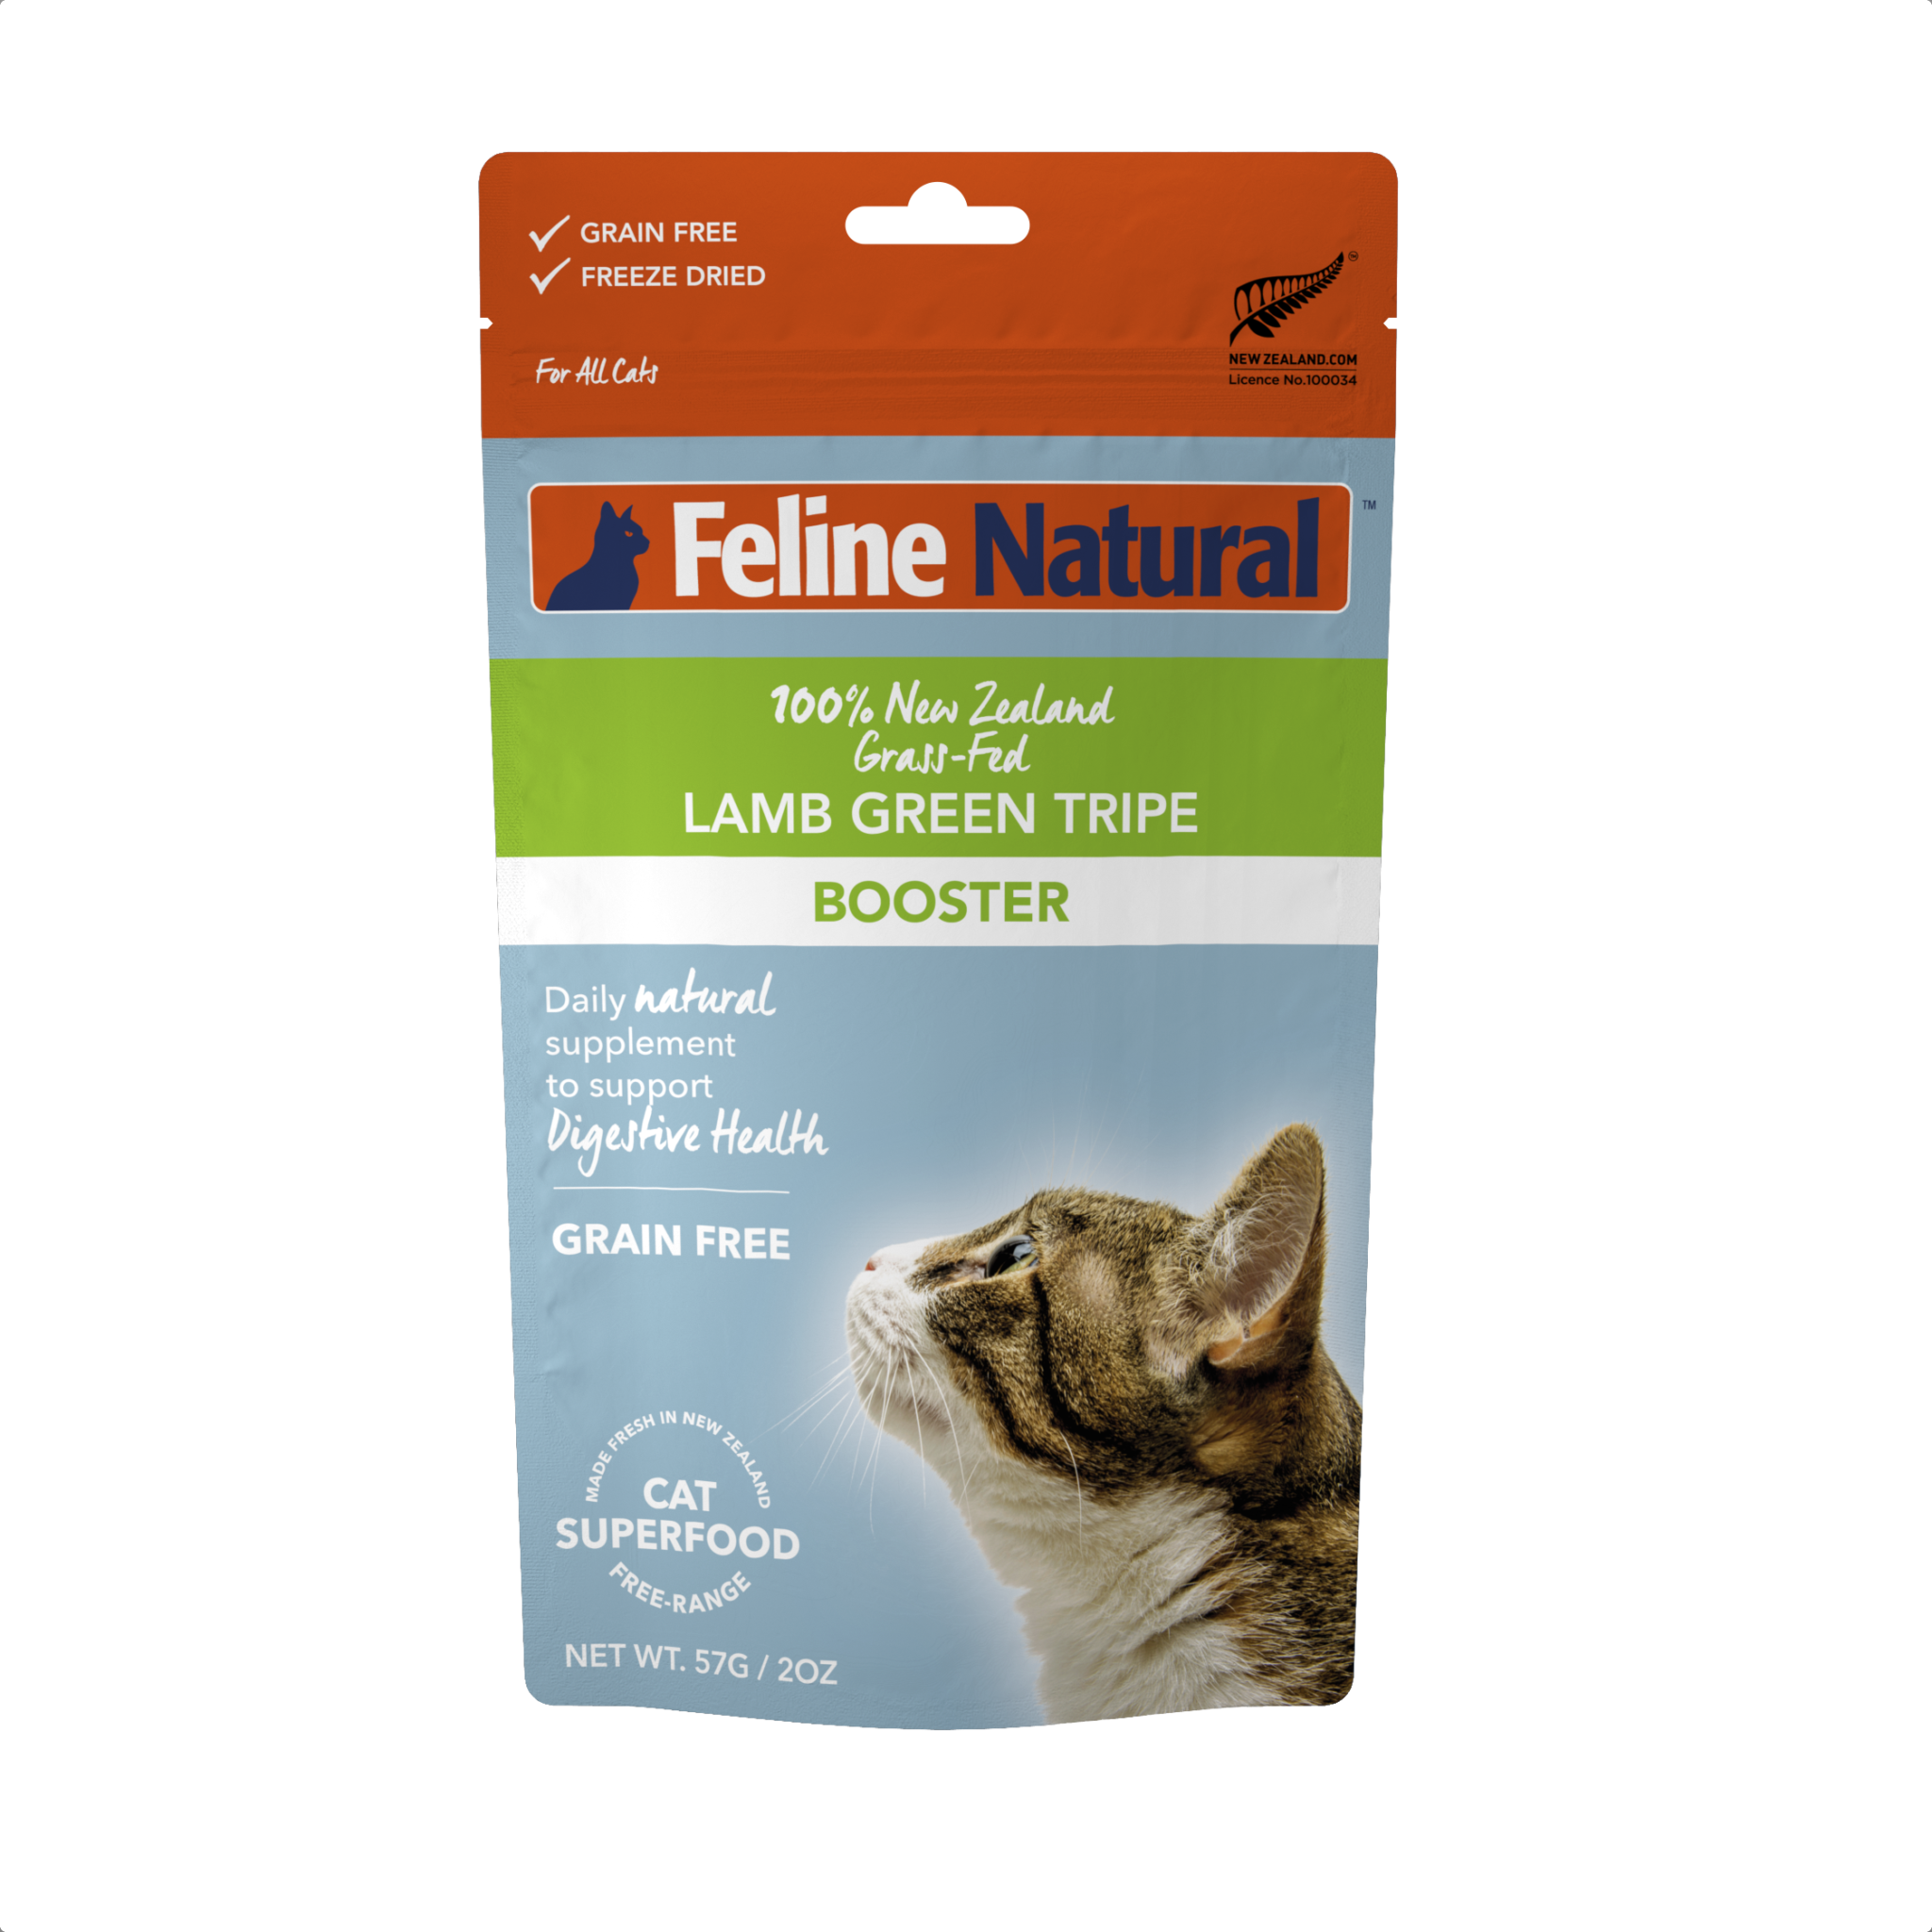 K9 Natural Feline Natural Lamb Green Tripe Freeze Dried Booster Cat Supplement 2oz